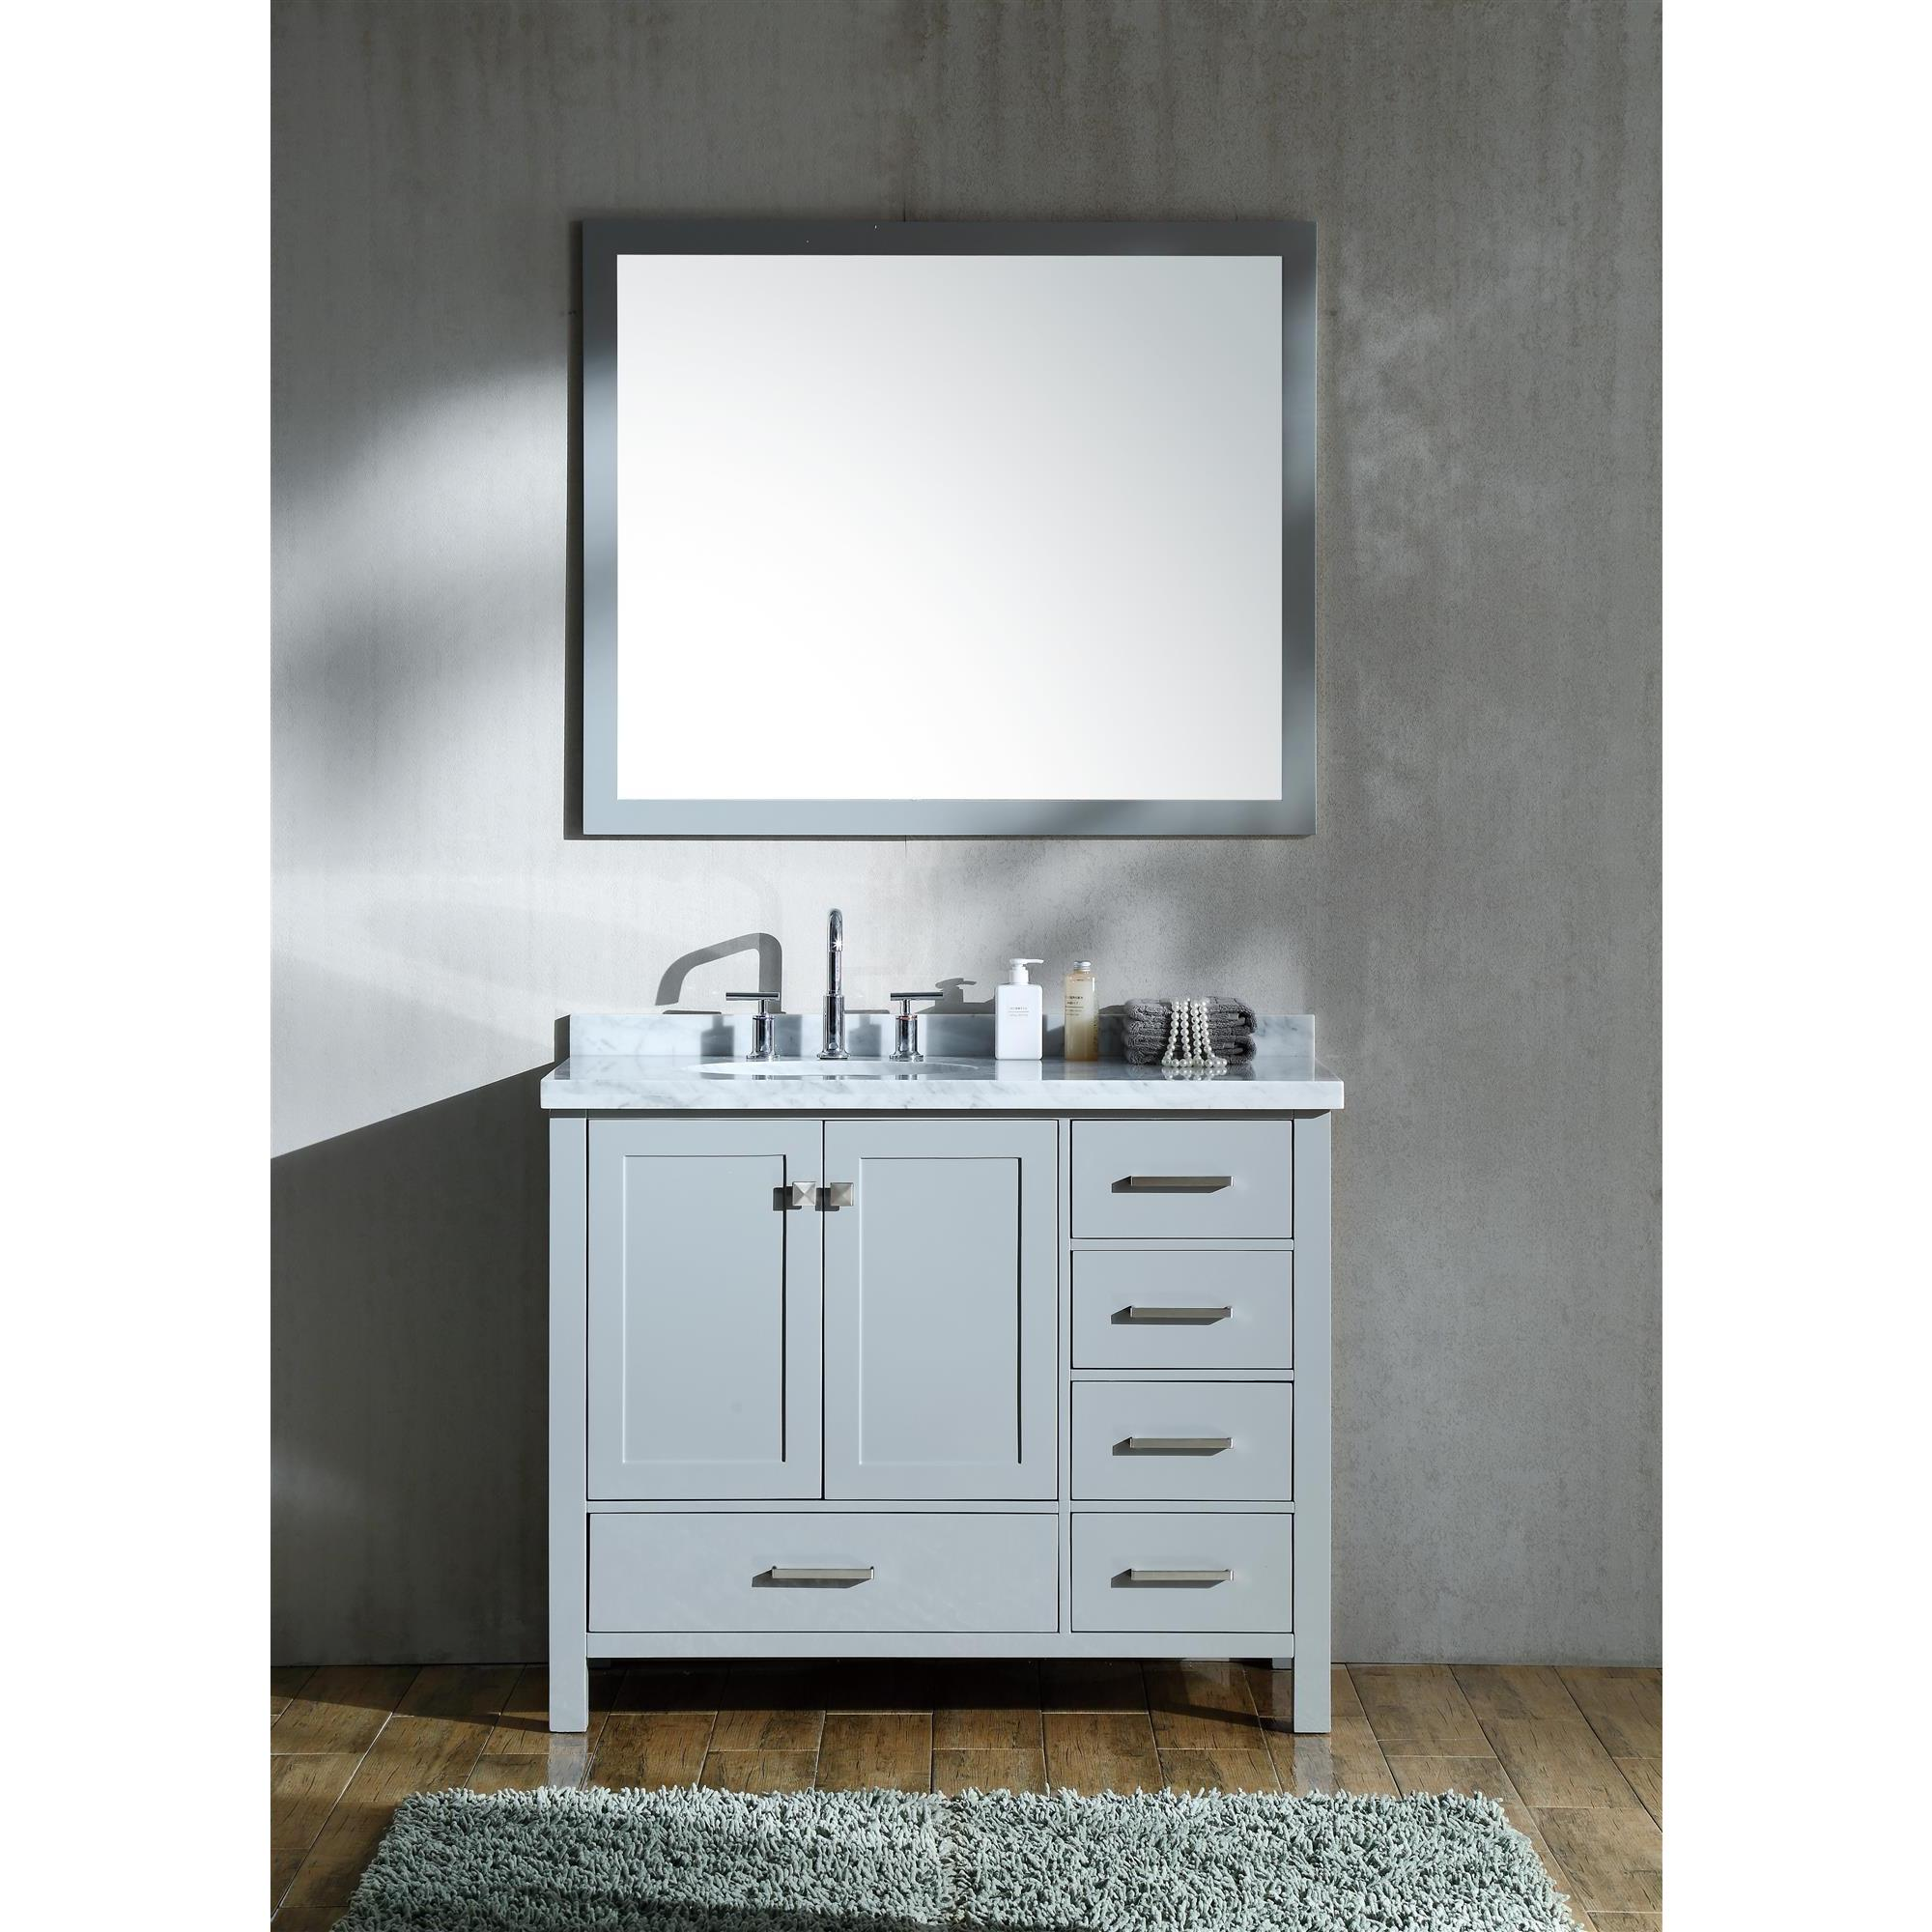 of design at bathroom company decorations house chest co inch to post designer back vanity plus decorating inspiration pleasing penelope also best from inspiring vanitycole series